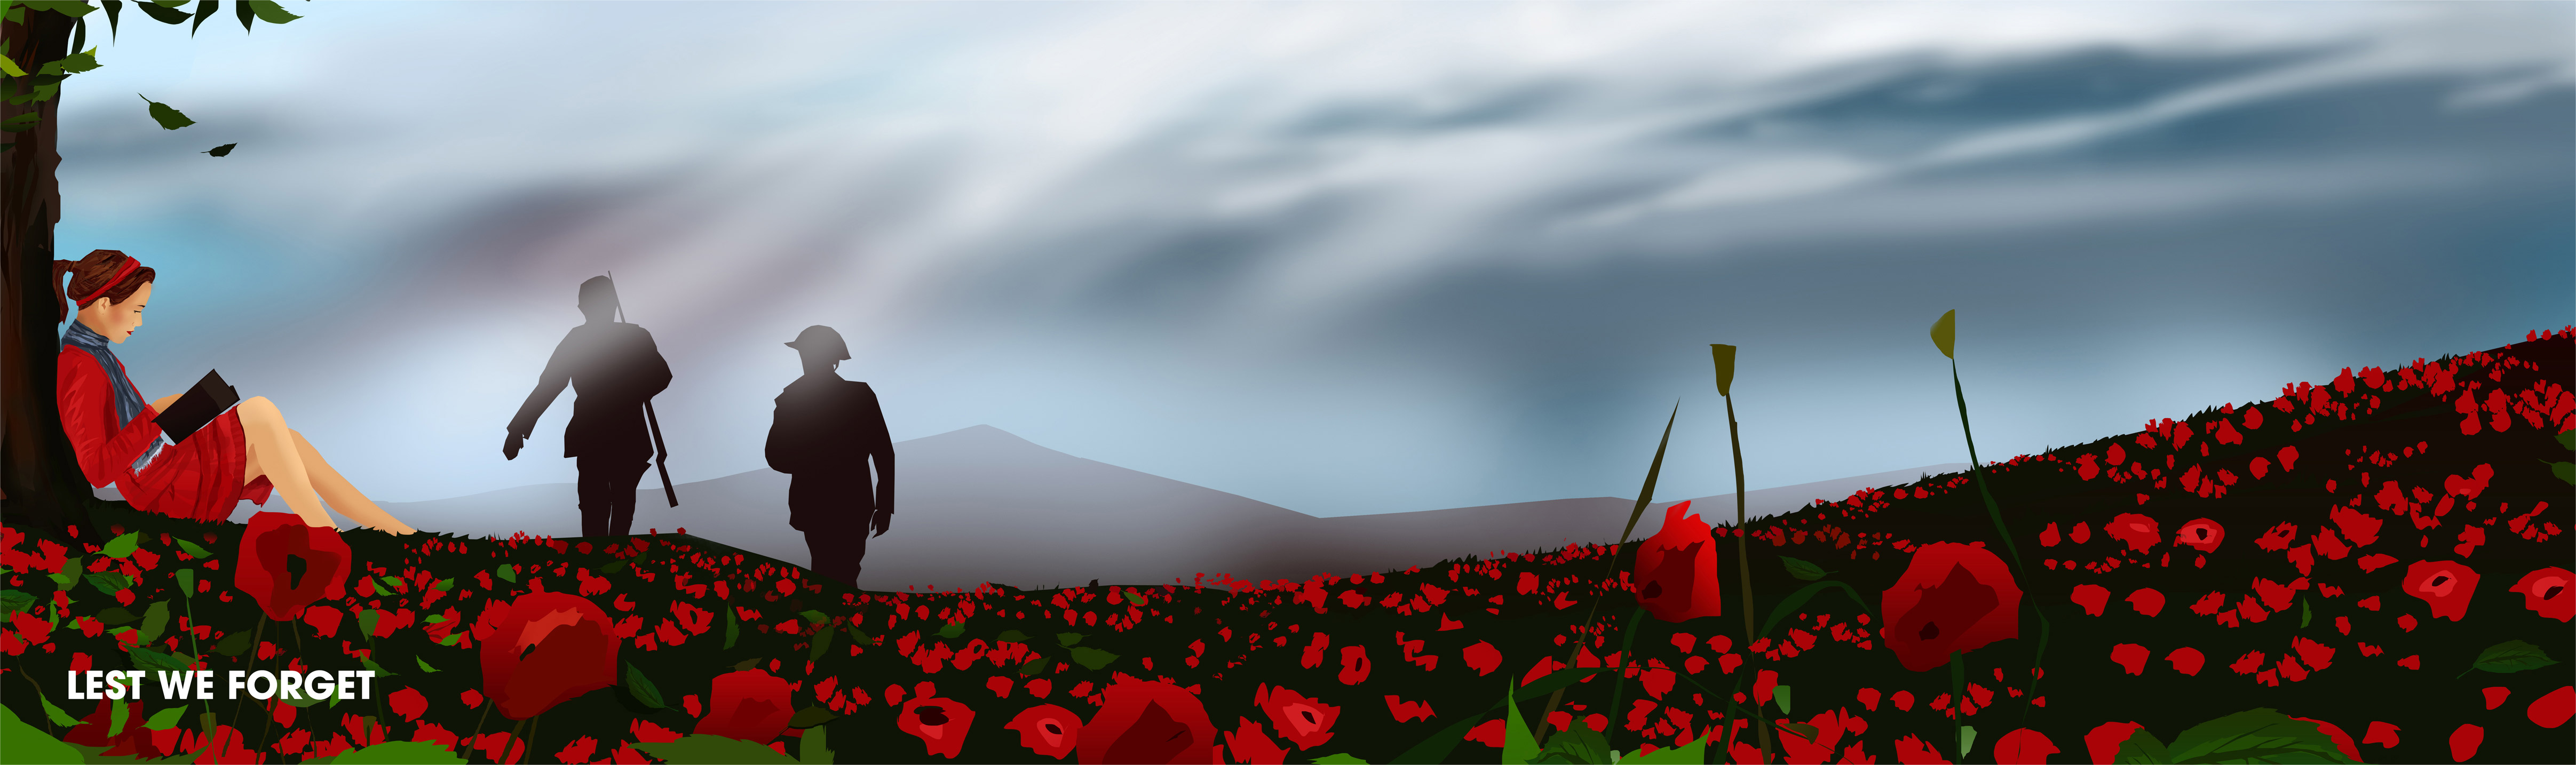 rembrance-day-poster